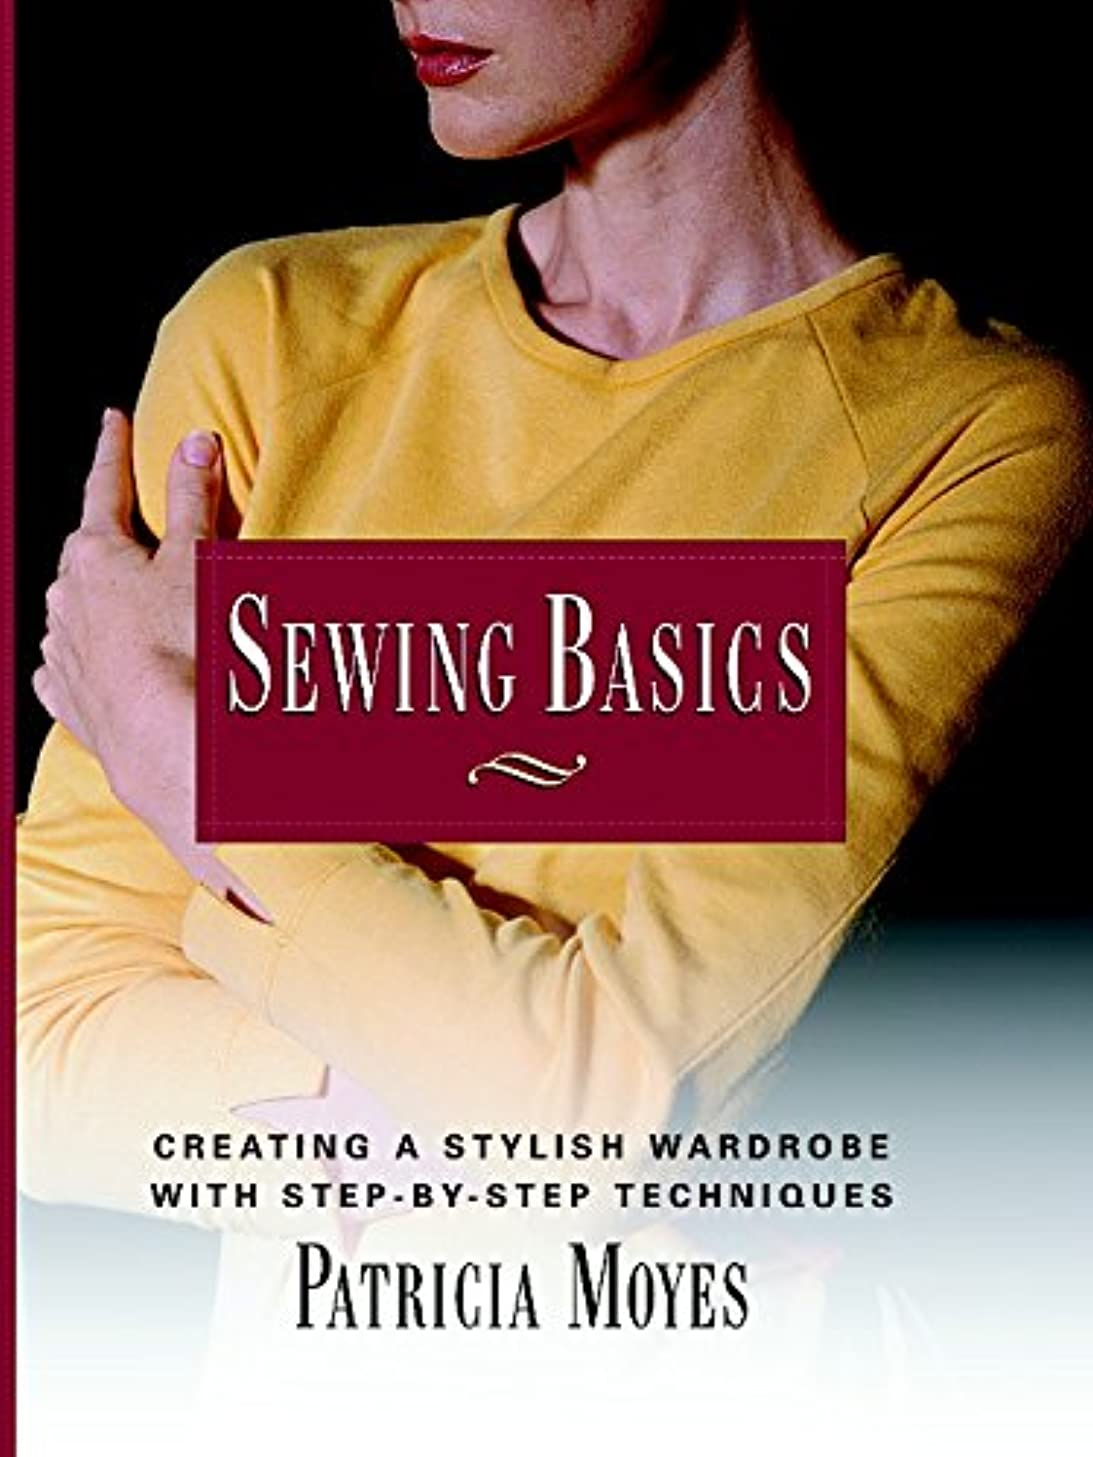 Sewing Basics: Creating a Stylish Wardrobe with Step-by-Step Tech